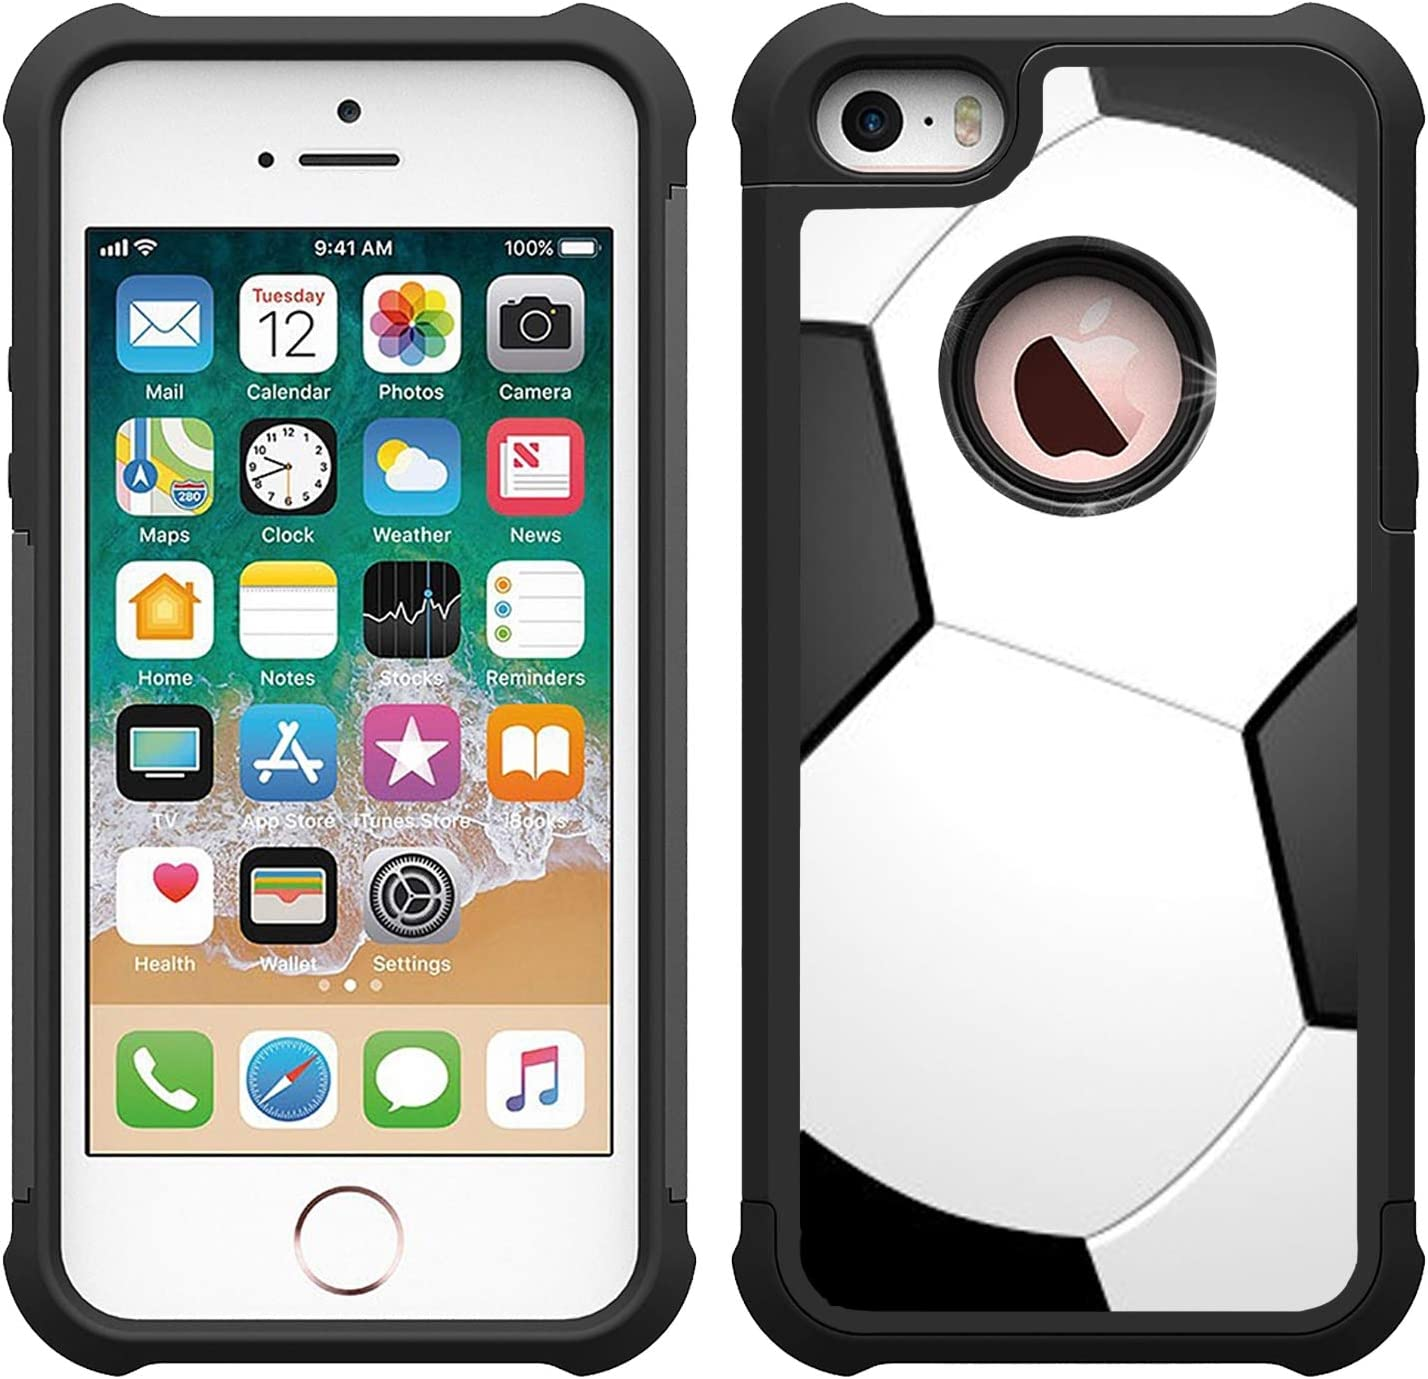 OptiCase iPhone 5 Case, iPhone 5S, iPhone SE Case - Soccer Printed Heavy Duty Hybrd Shockproof Unique Designer Case with Great Protection for iPhone 5 / iPhone 5S / iPhone SE